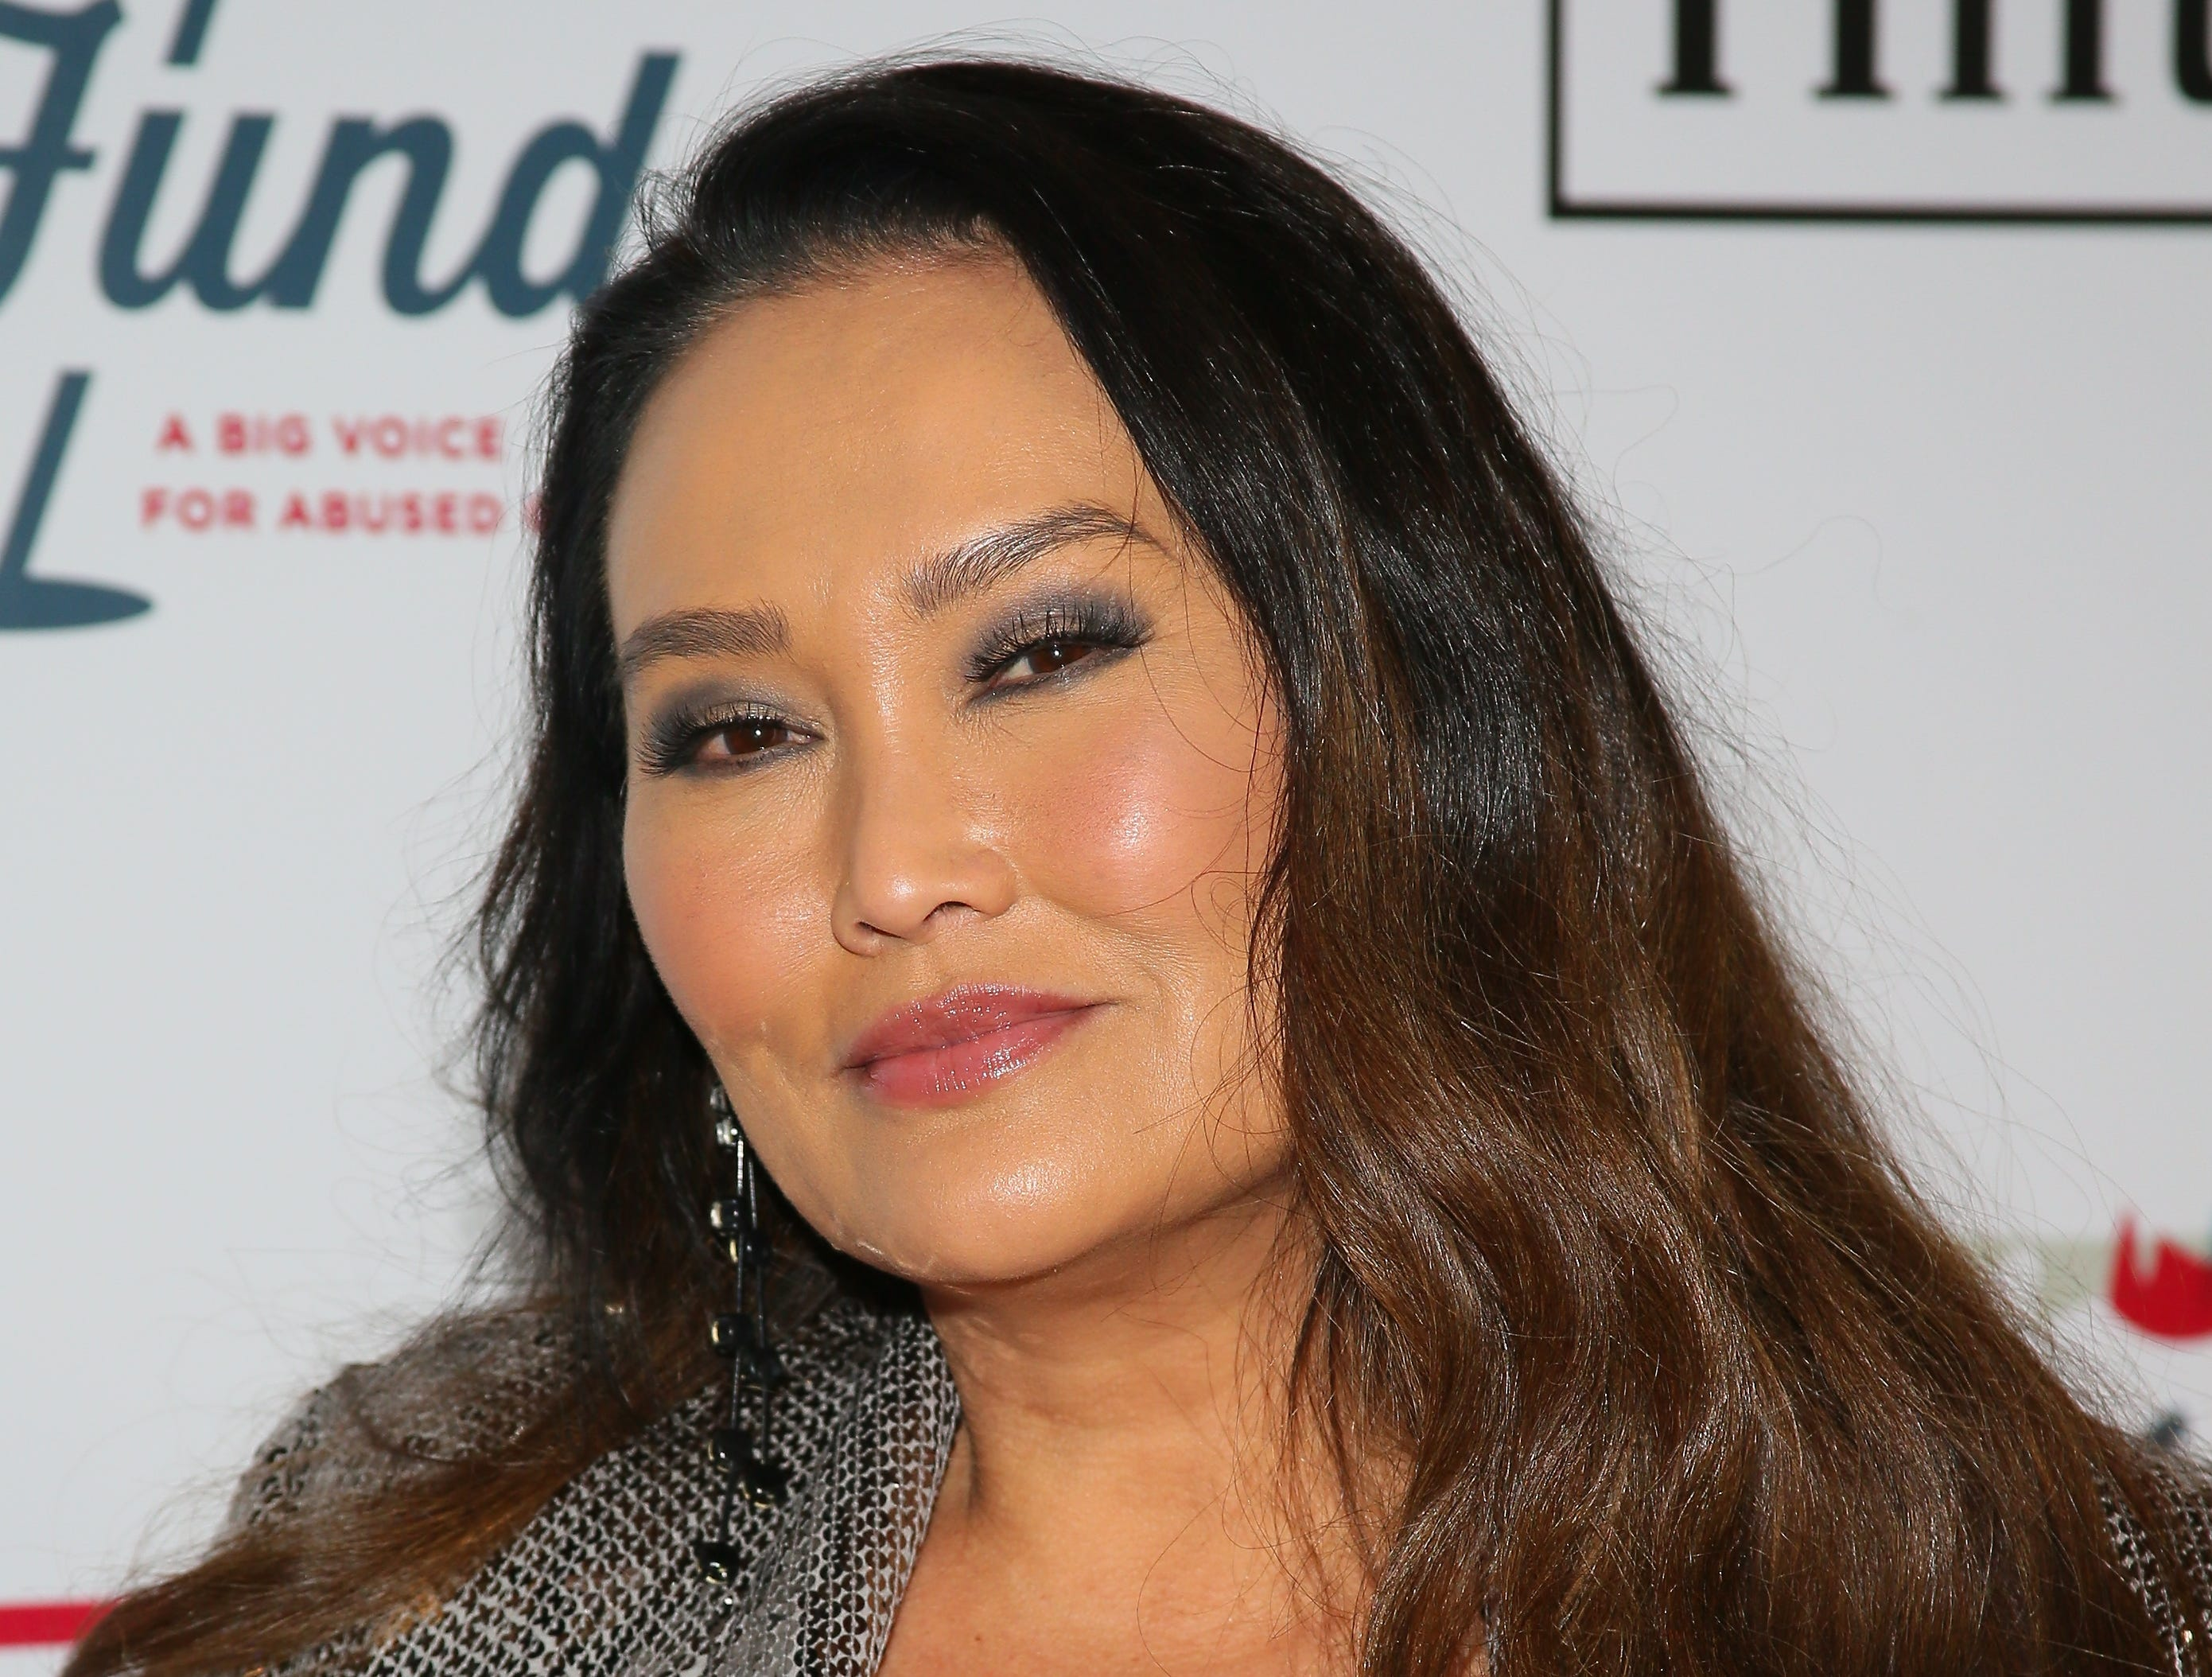 LOS ANGELES, CALIFORNIA - FEBRUARY 10: Tia Carrere attends Steven Tyler's GRAMMY Awards after party benefiting Janie's Fund held at Raleigh Studios on February 10, 2019 in Los Angeles, California. (Photo by Jean Baptiste Lacroix/Getty Images) ORG XMIT: 775295983 ORIG FILE ID: 1097768376